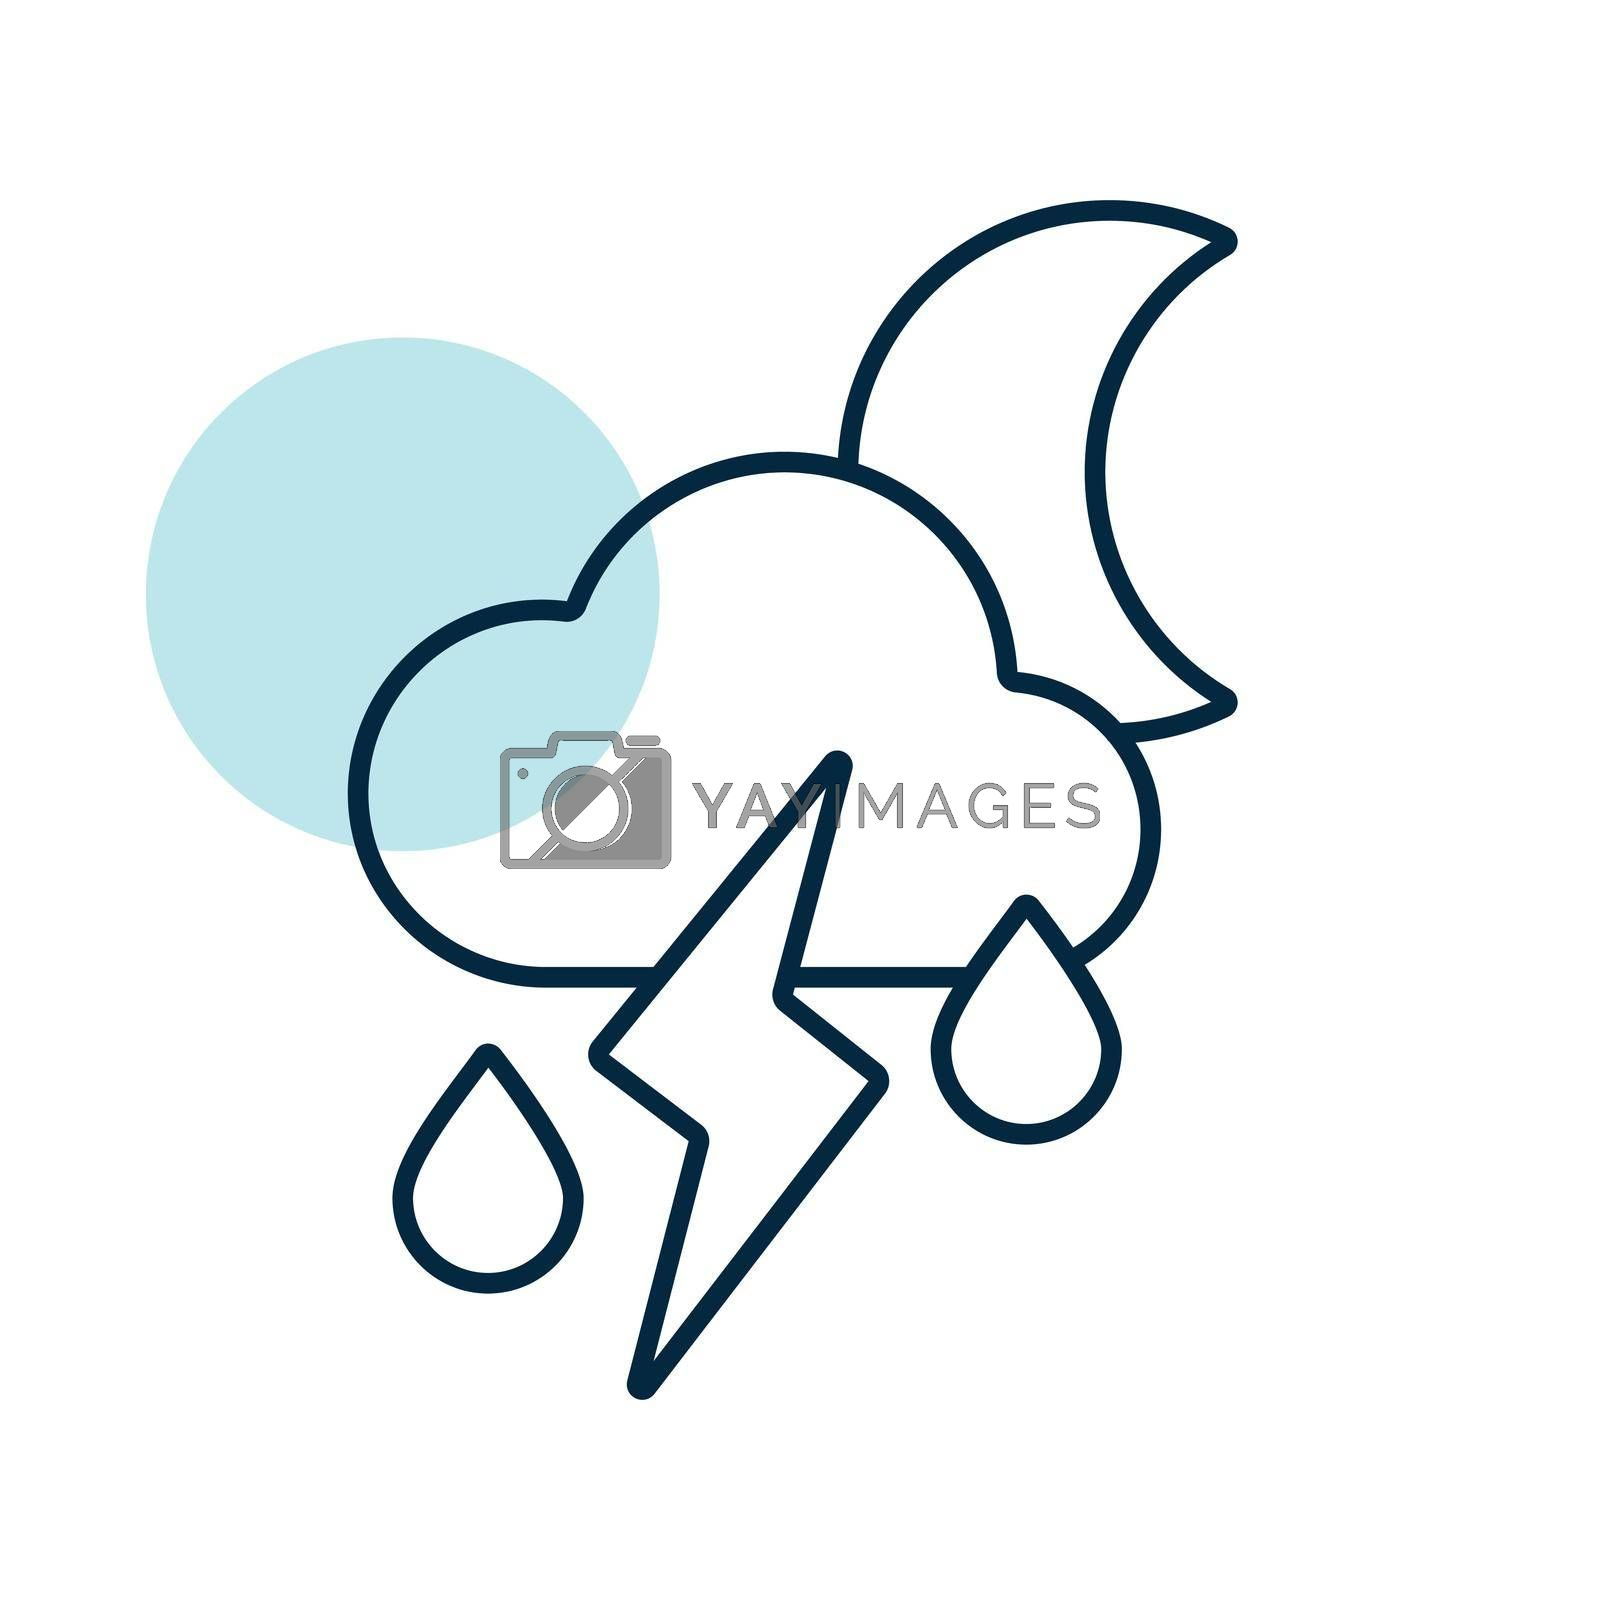 Moon cloud with fall rain and lightning vector icon. Meteorology sign. Graph symbol for travel, tourism and weather web site and apps logo, app, UI